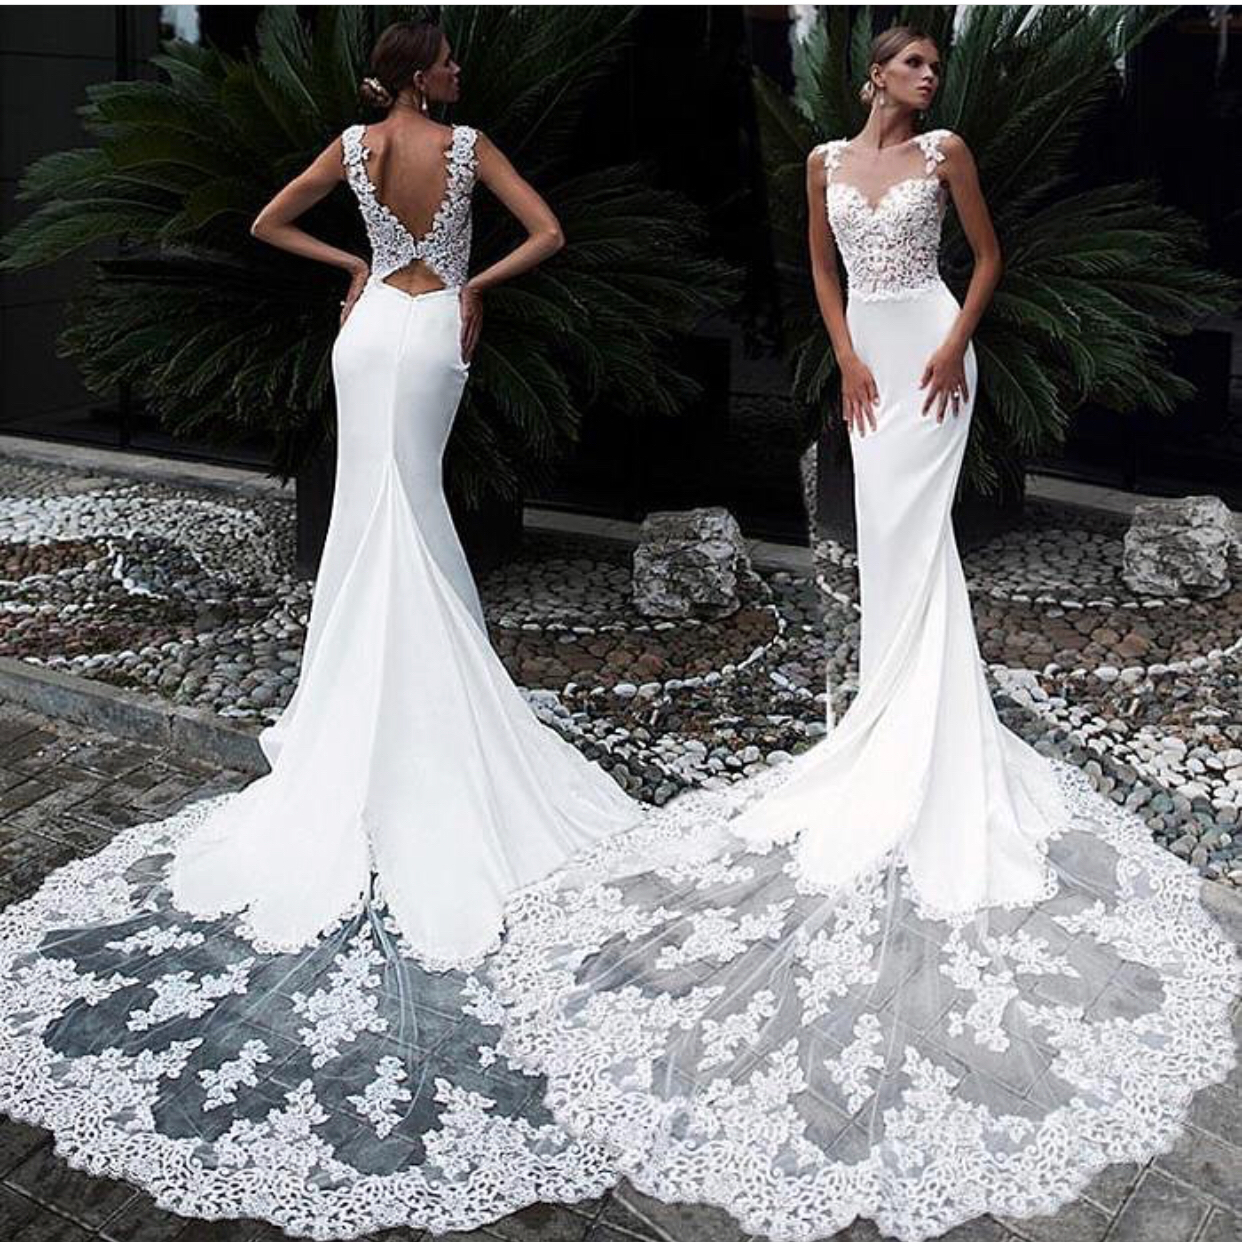 Mermaid Wedding Dress, Lace Applique Wedding Dress, Sexy